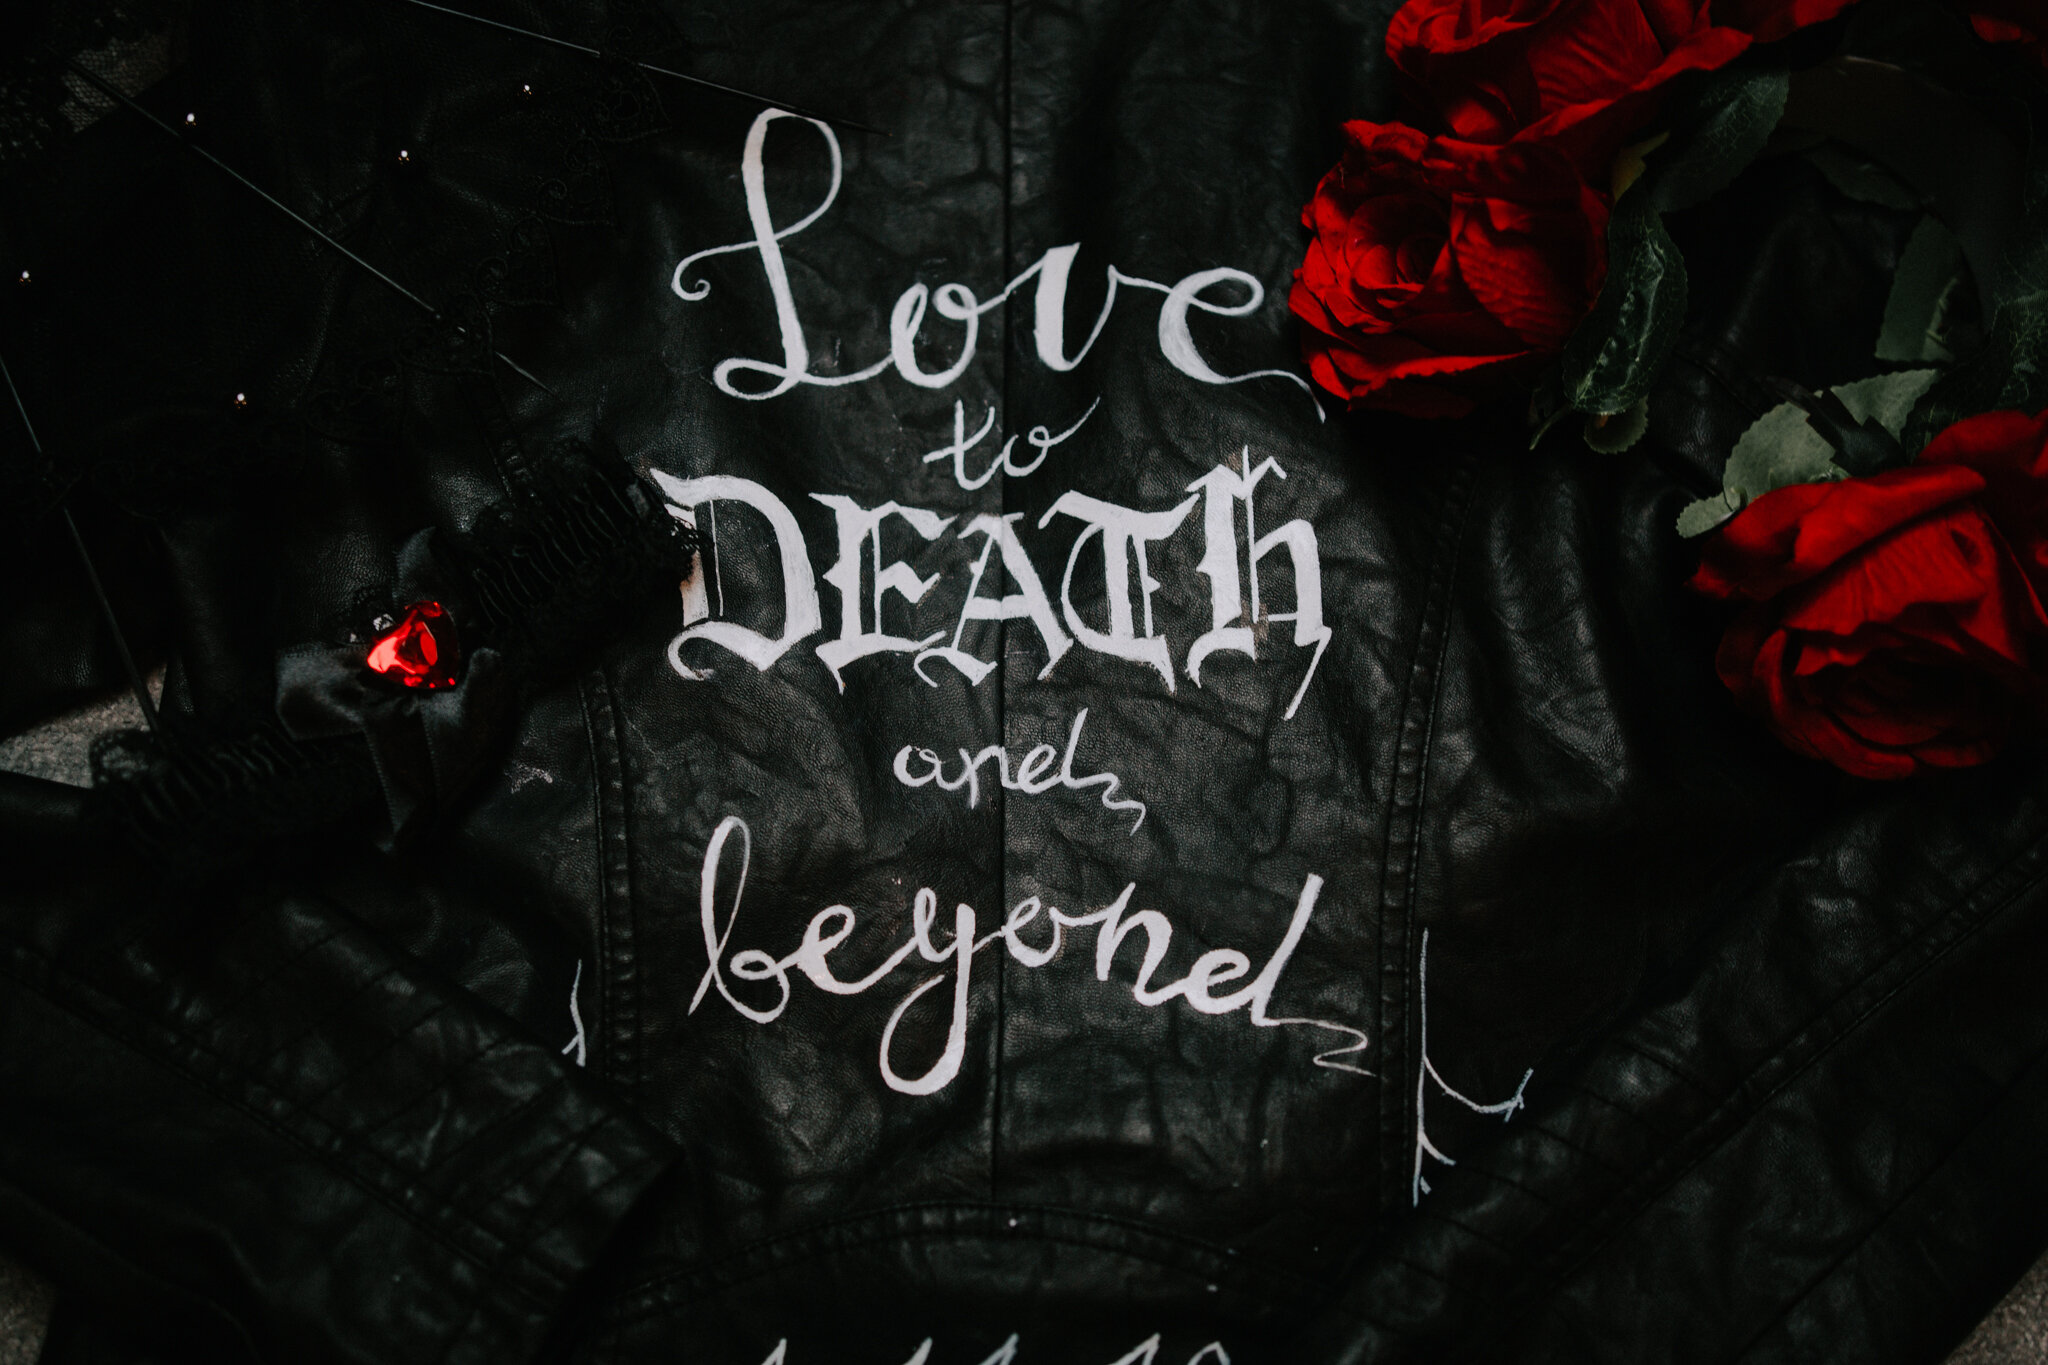 The leather jacket with the words on the back